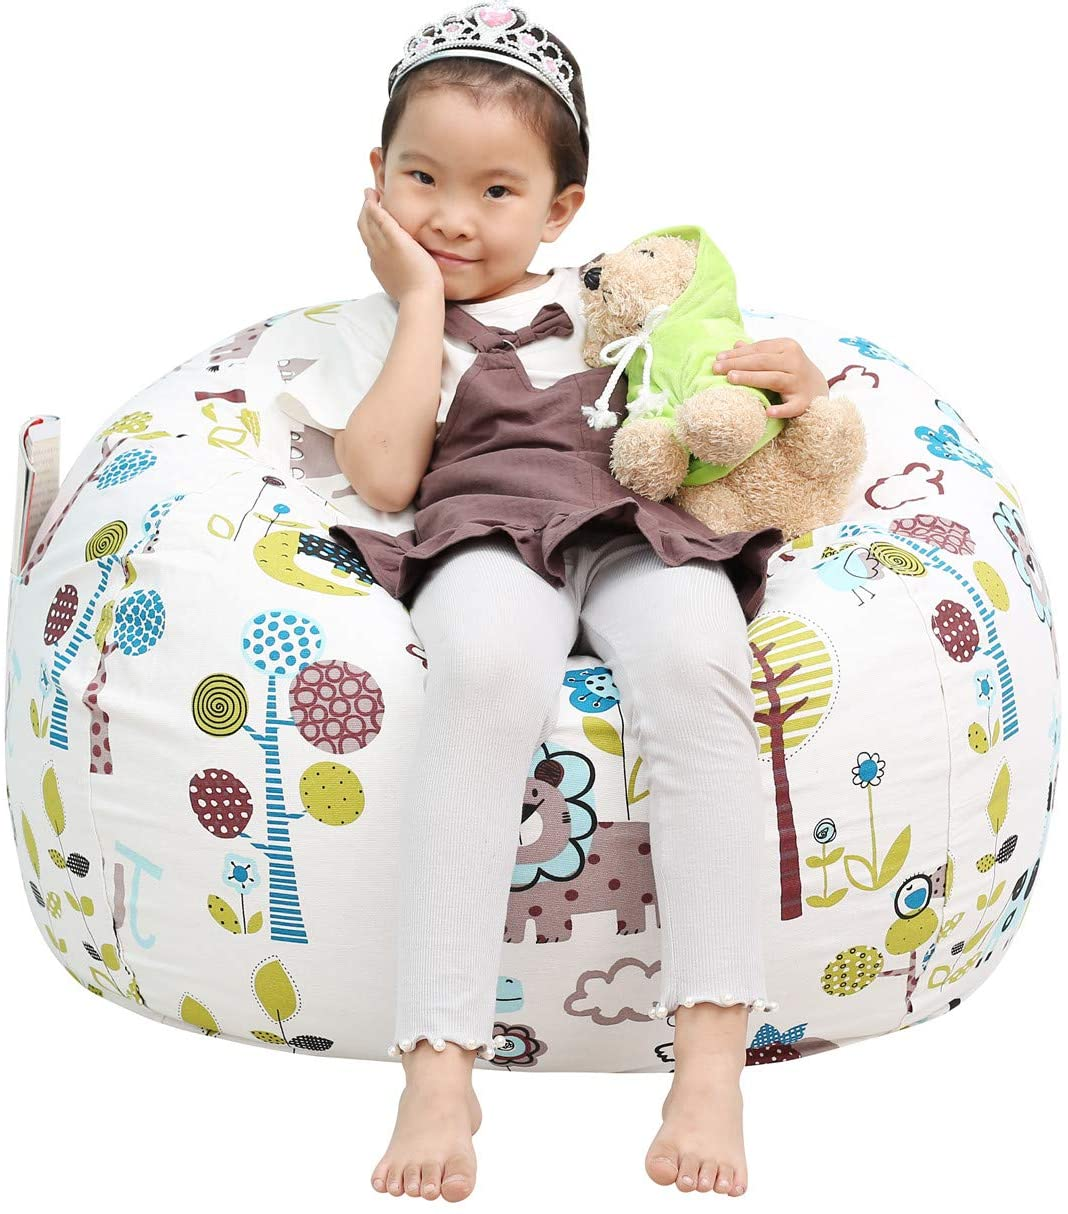 Great Eagle Stuffed Animal Storage Bean Bag Chair Cover 38 x 38 Inches   Extra Large Cotton Canvas   Bean Bag Chair for Kids, Toddlers and Teens(Boys or Girls) Toy Storage Bag Animal Paradise